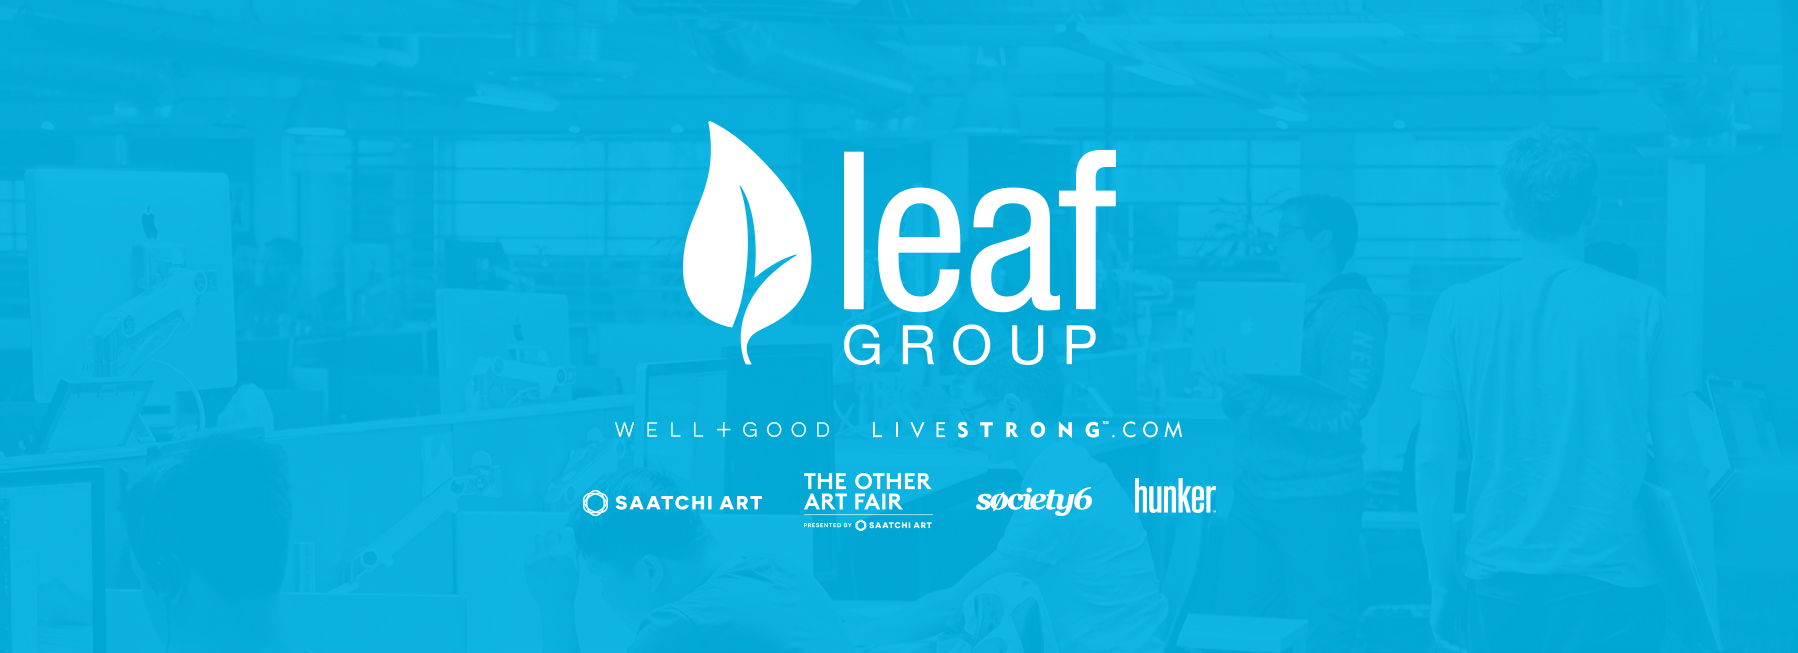 Leaf Group